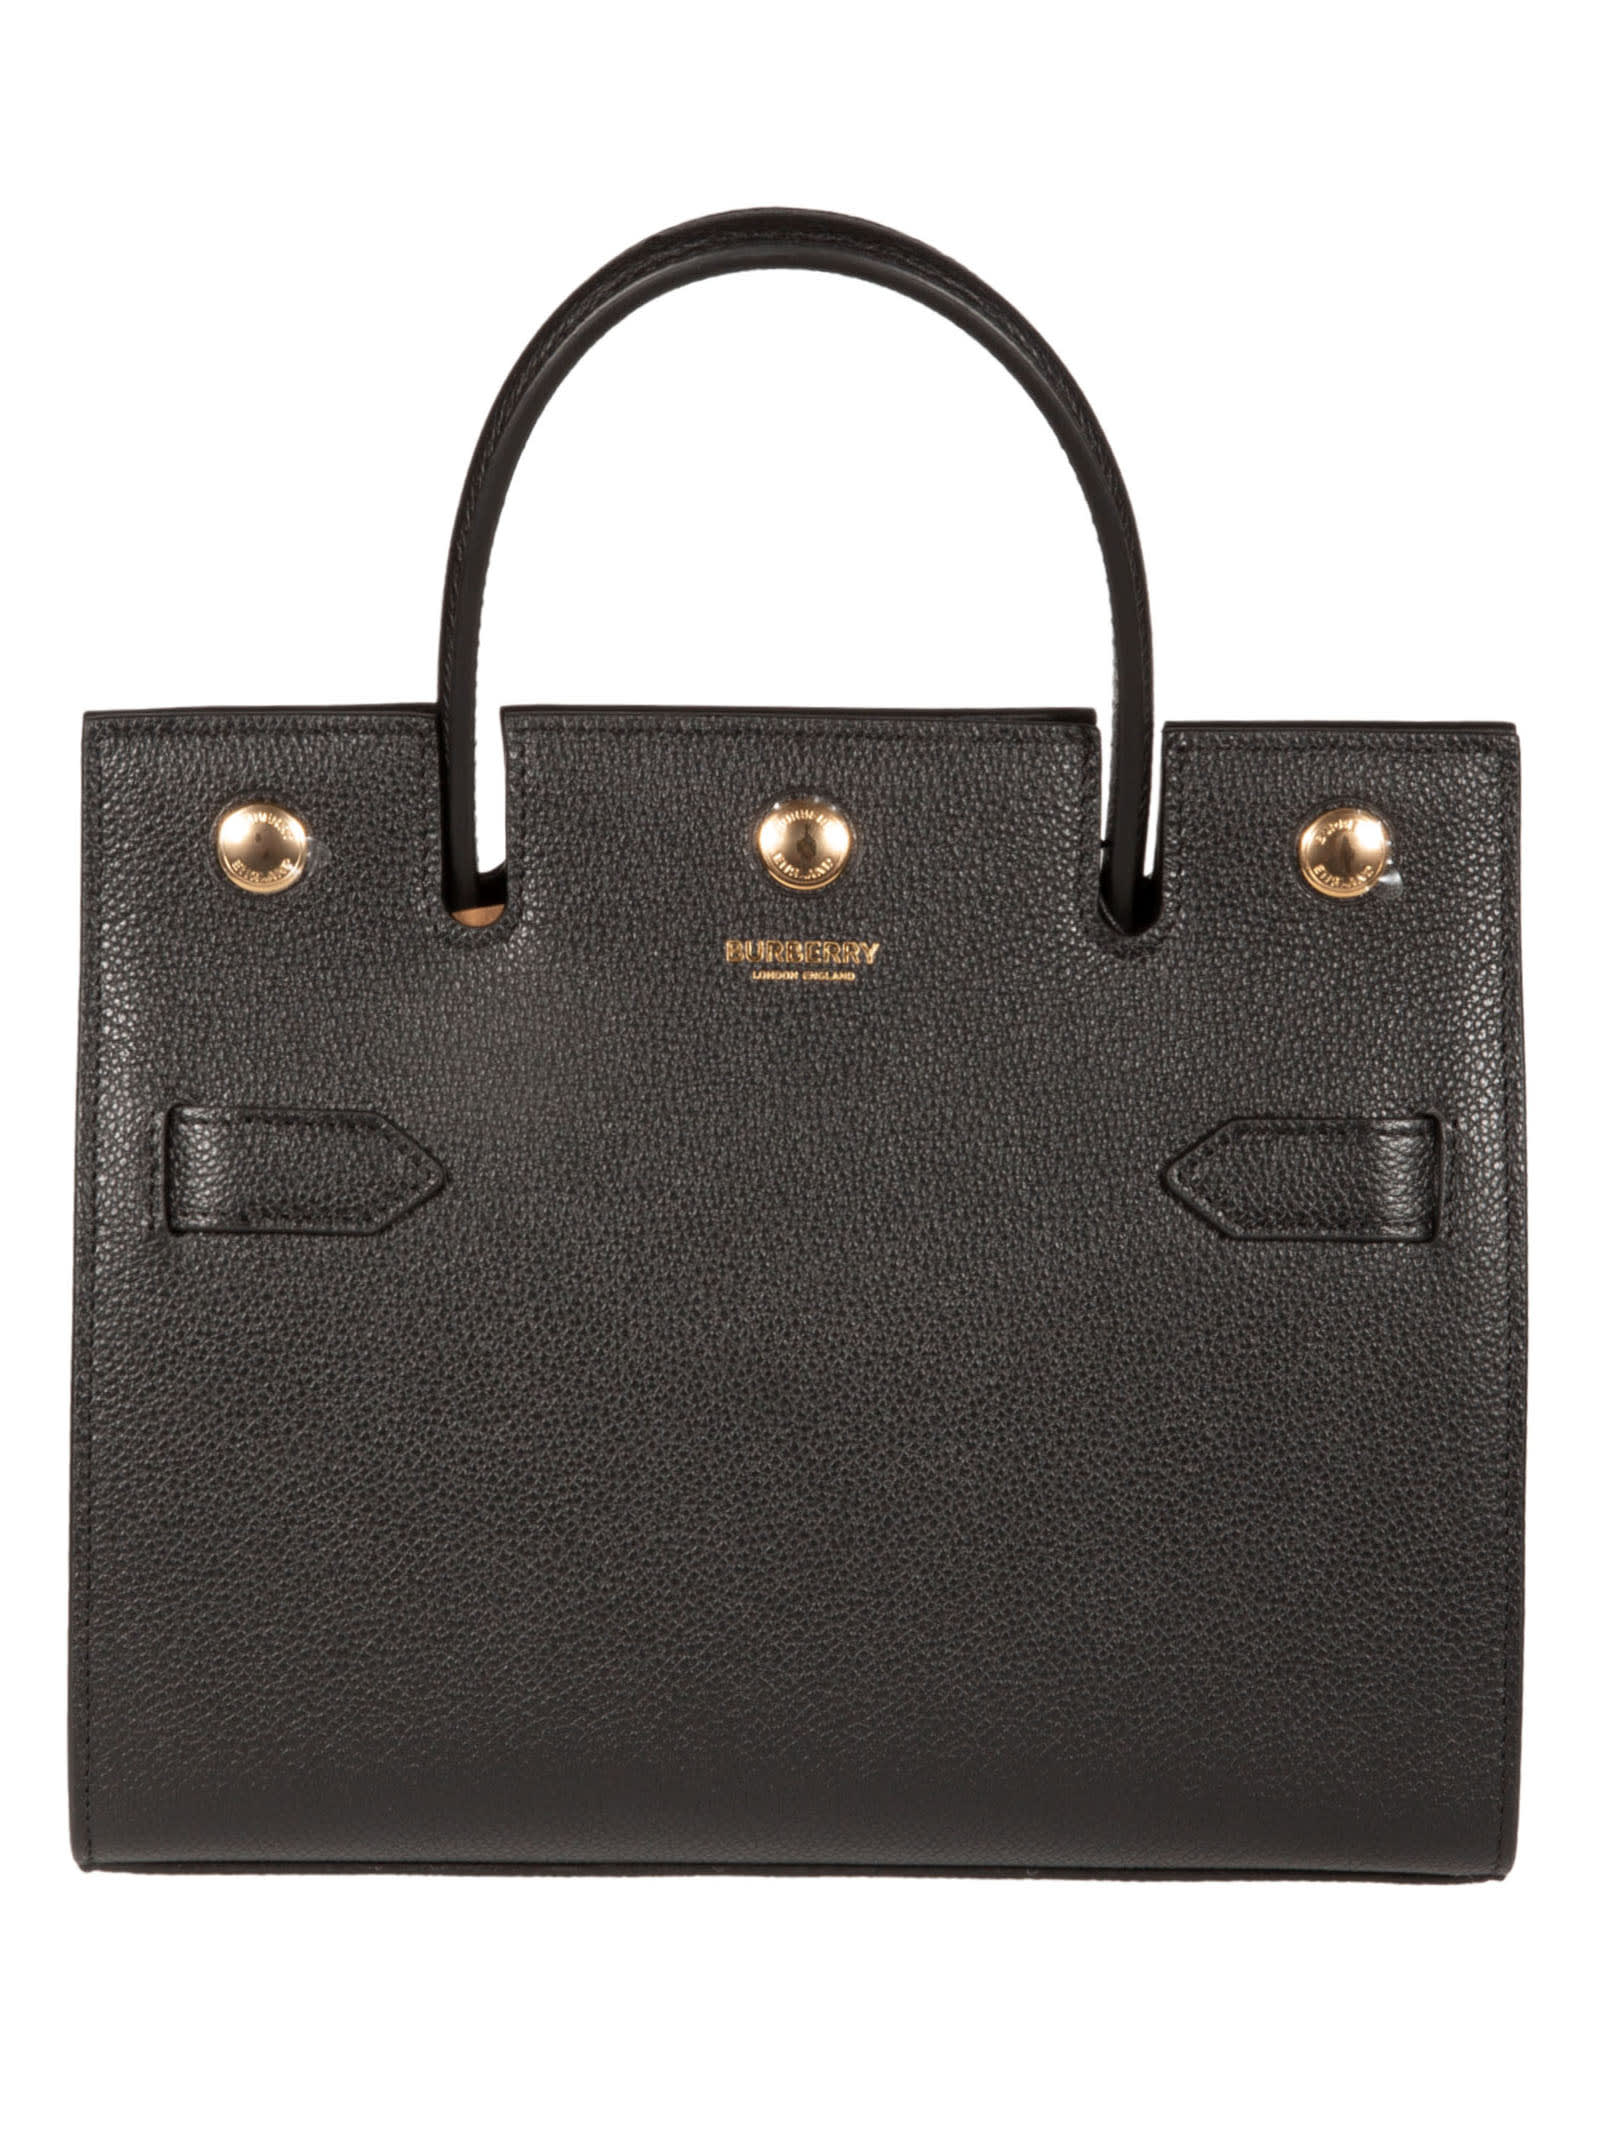 Burberry Snap-lock Tote